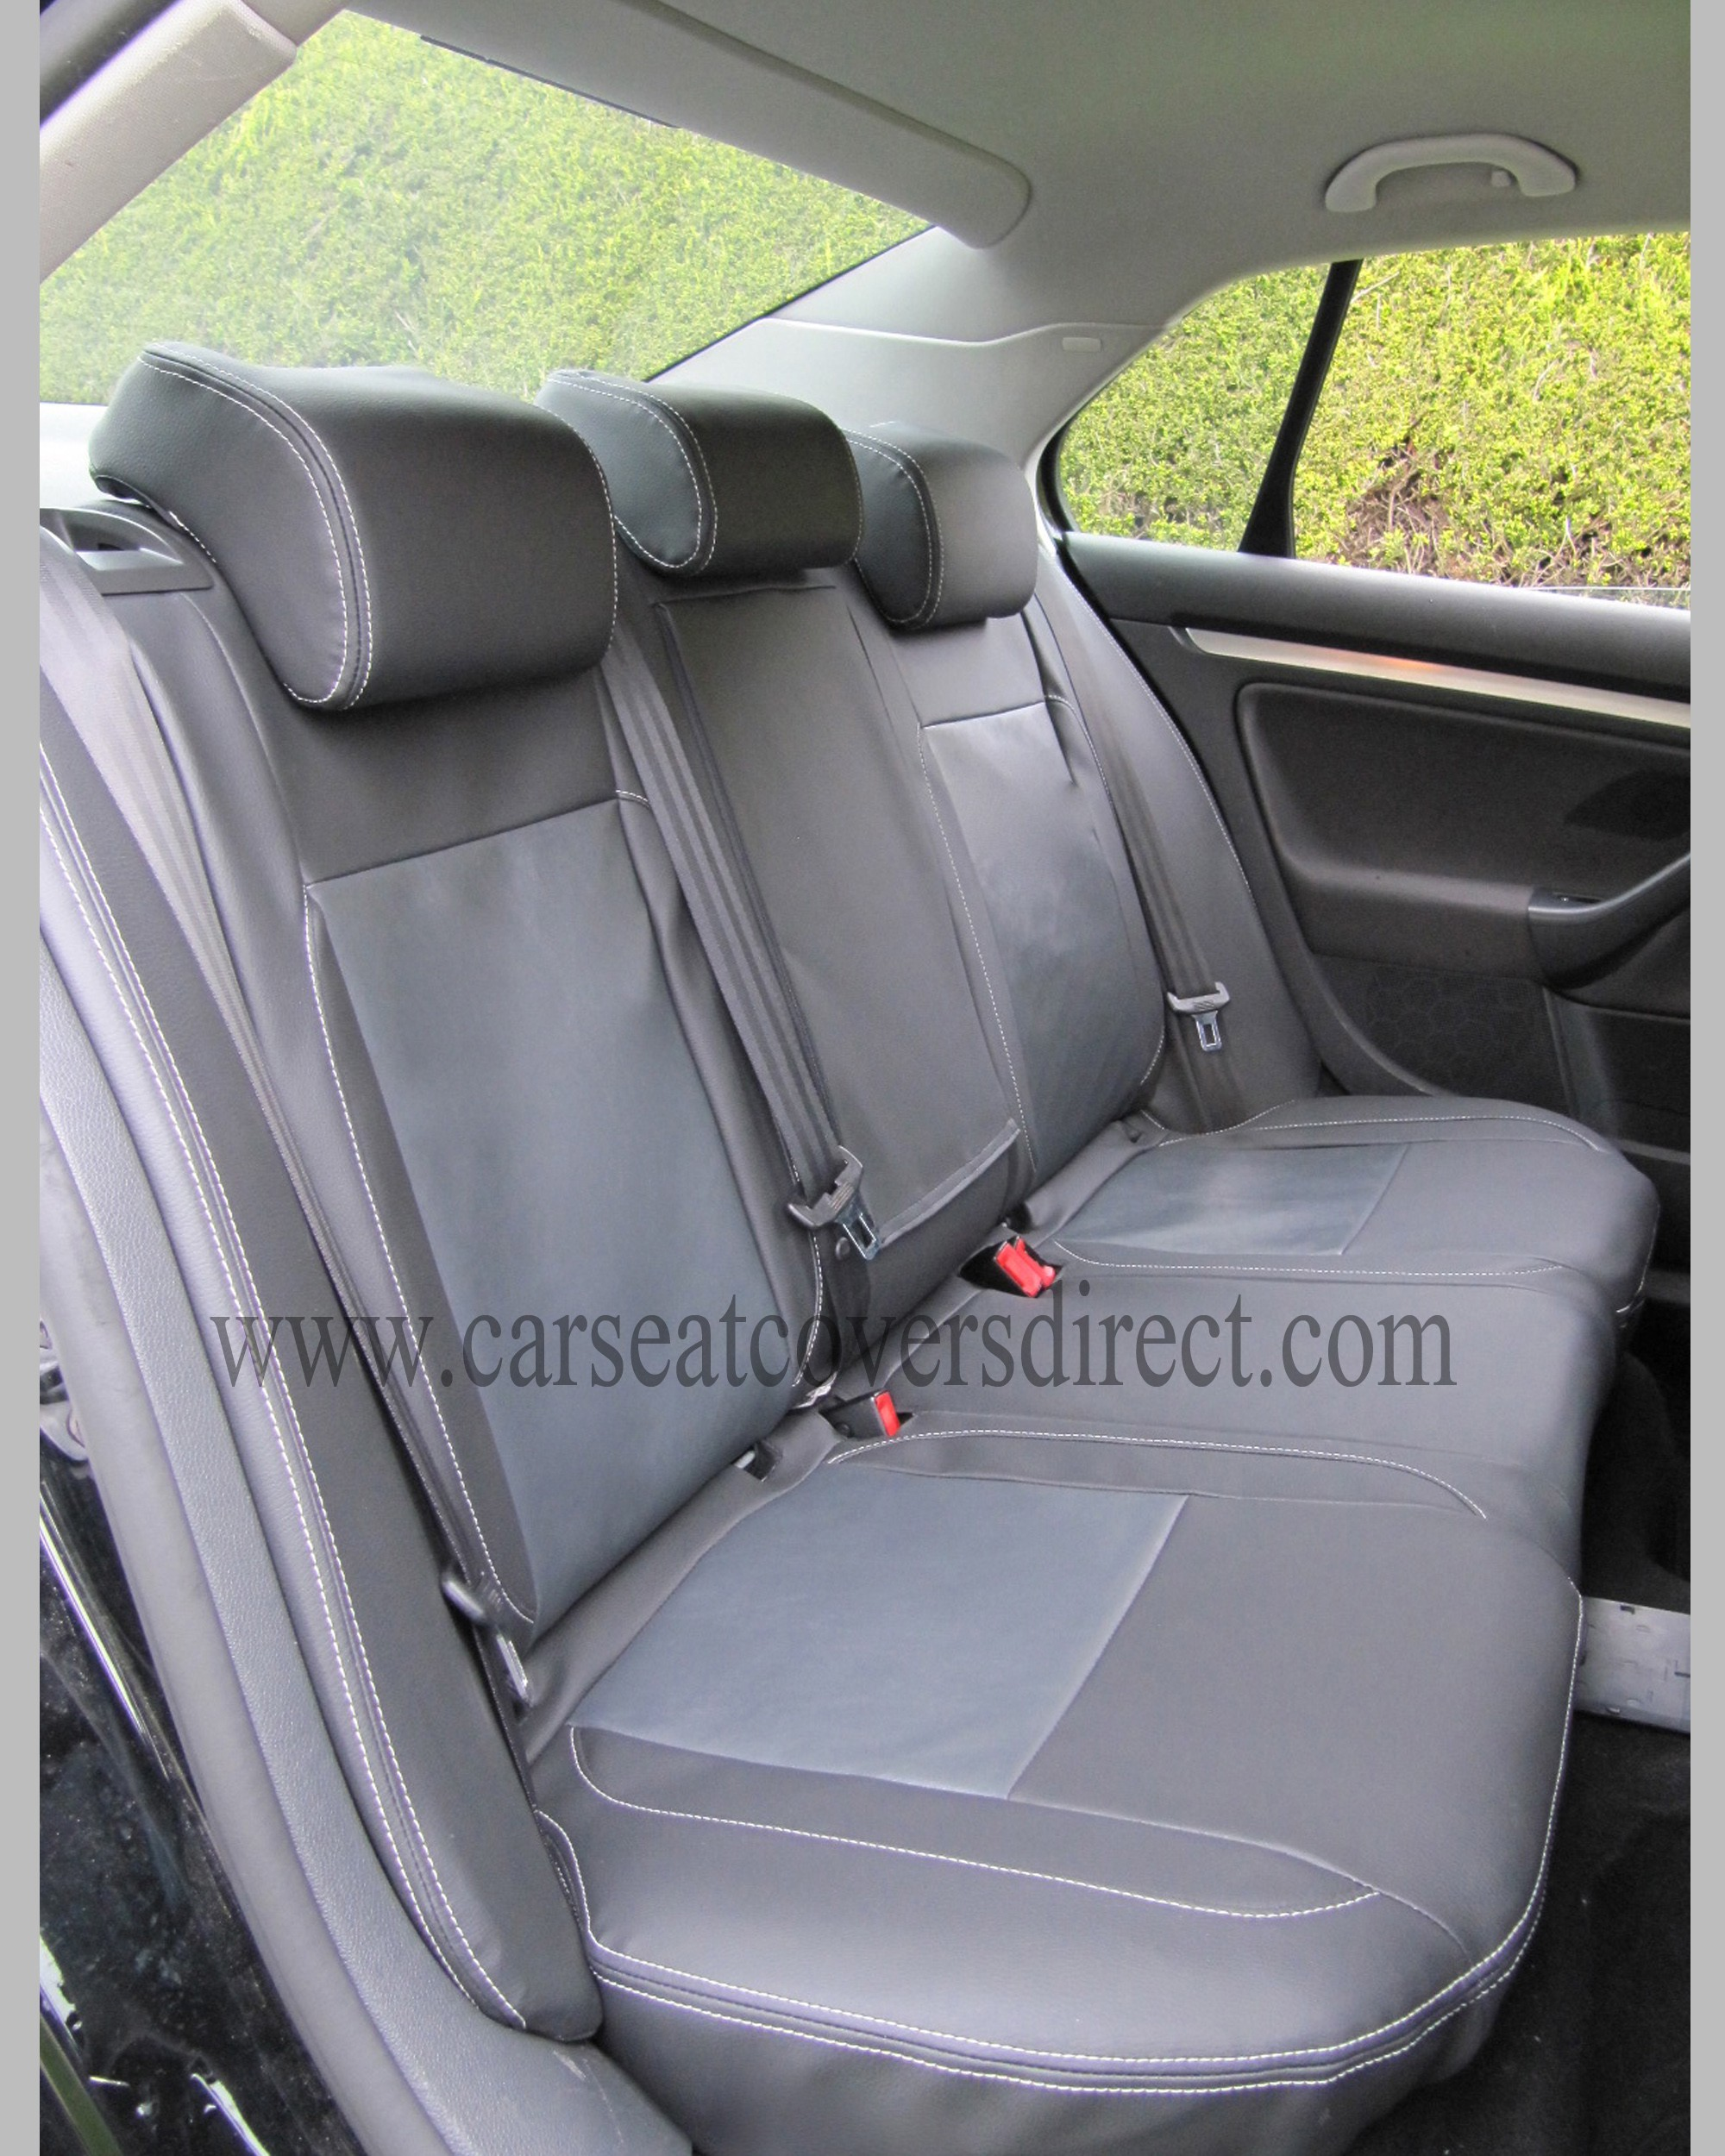 VOLKSWAGEN VW JETTA Seat Covers Car Seat Covers Direct - Tailored To Your Choice